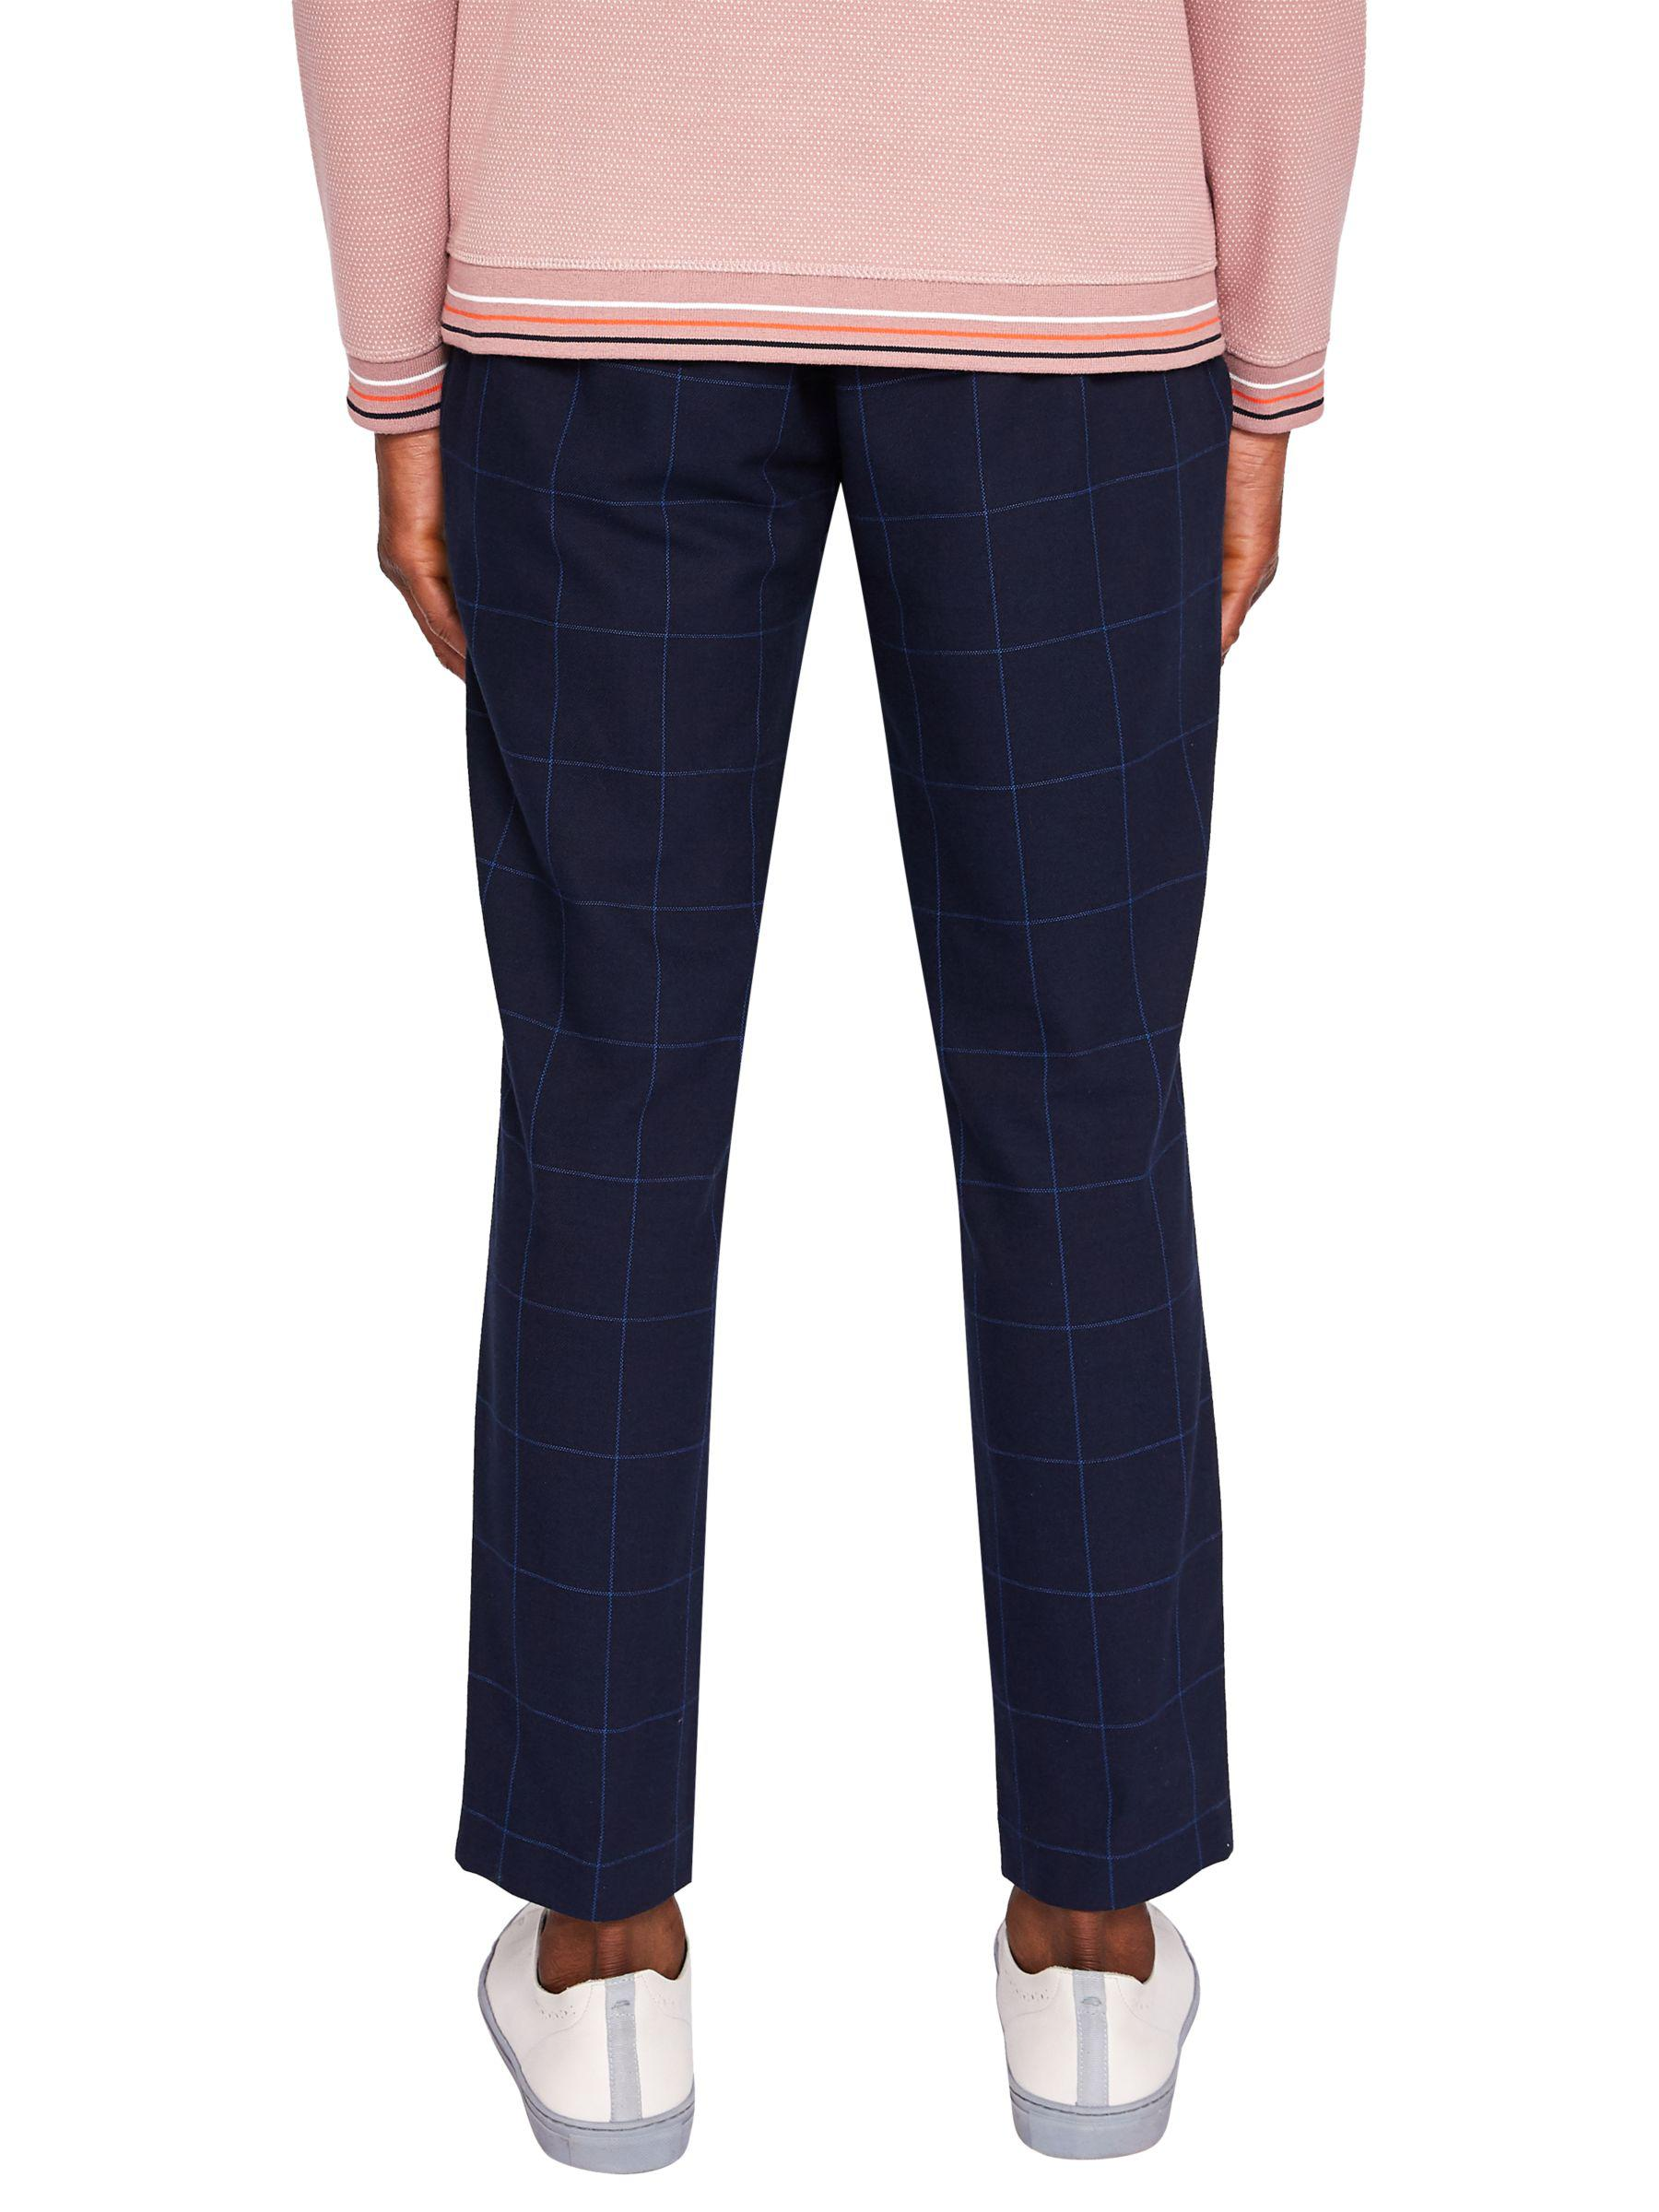 Ted Baker Cotton Izartro Slim Fit Windowpane Check Trousers in Navy (Blue) for Men